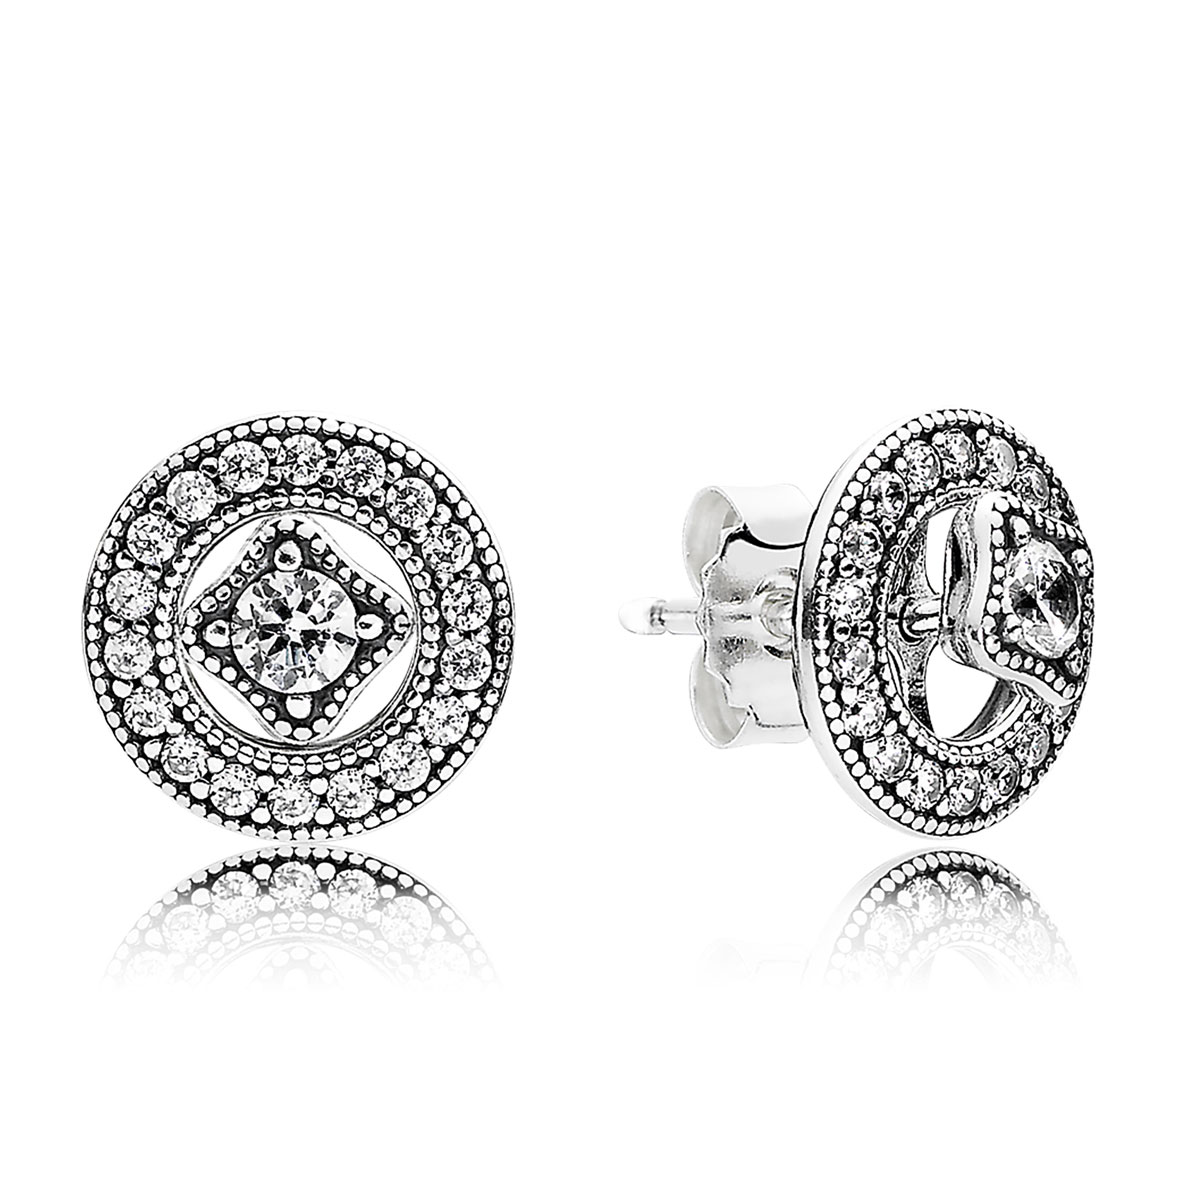 PANDORA Vintage Allure with Clear CZ Earrings